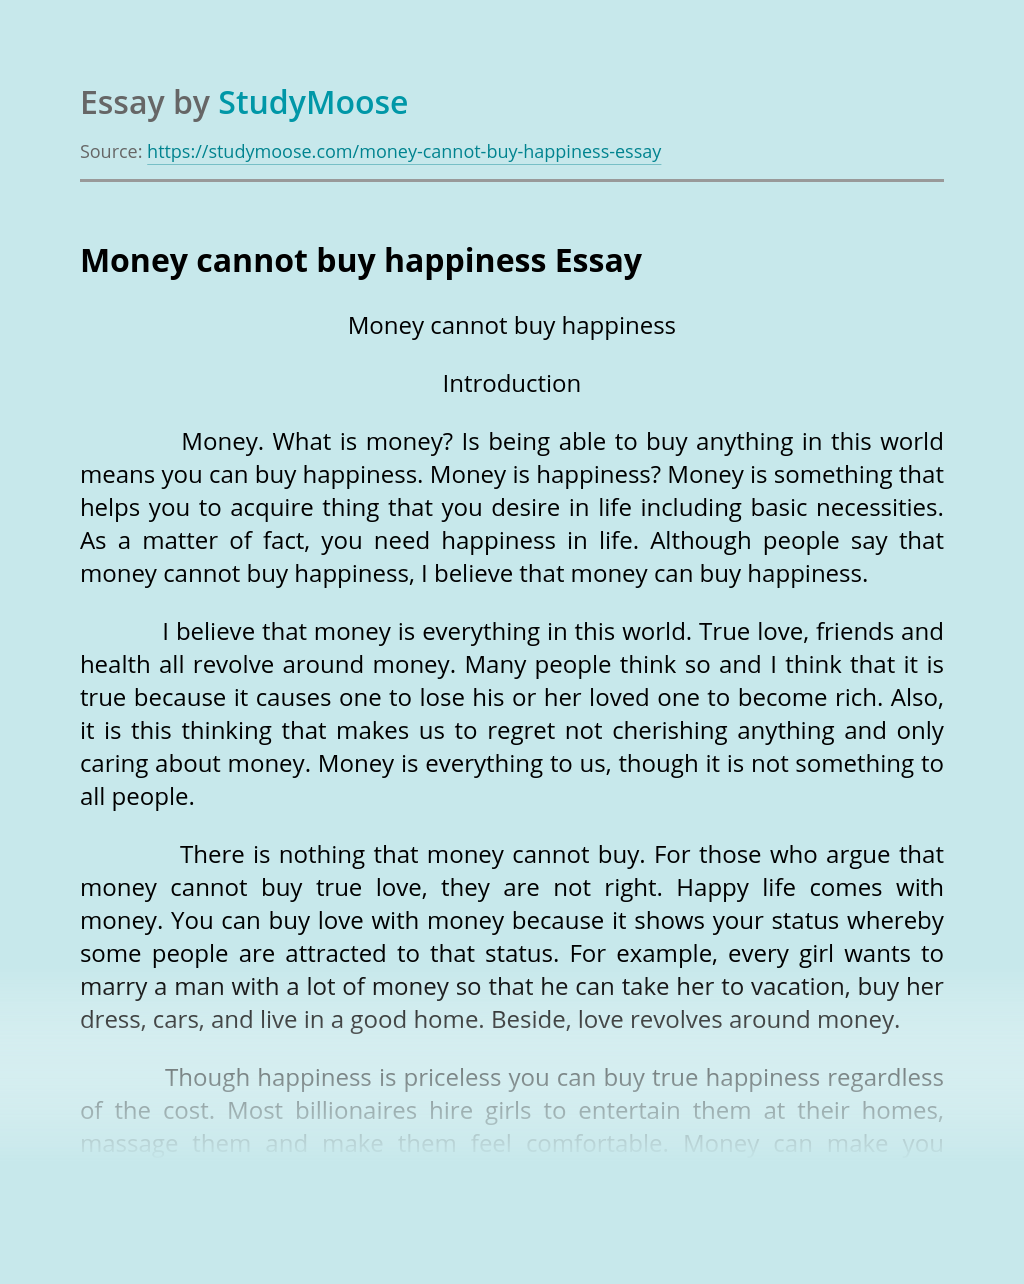 Money cannot buy happiness